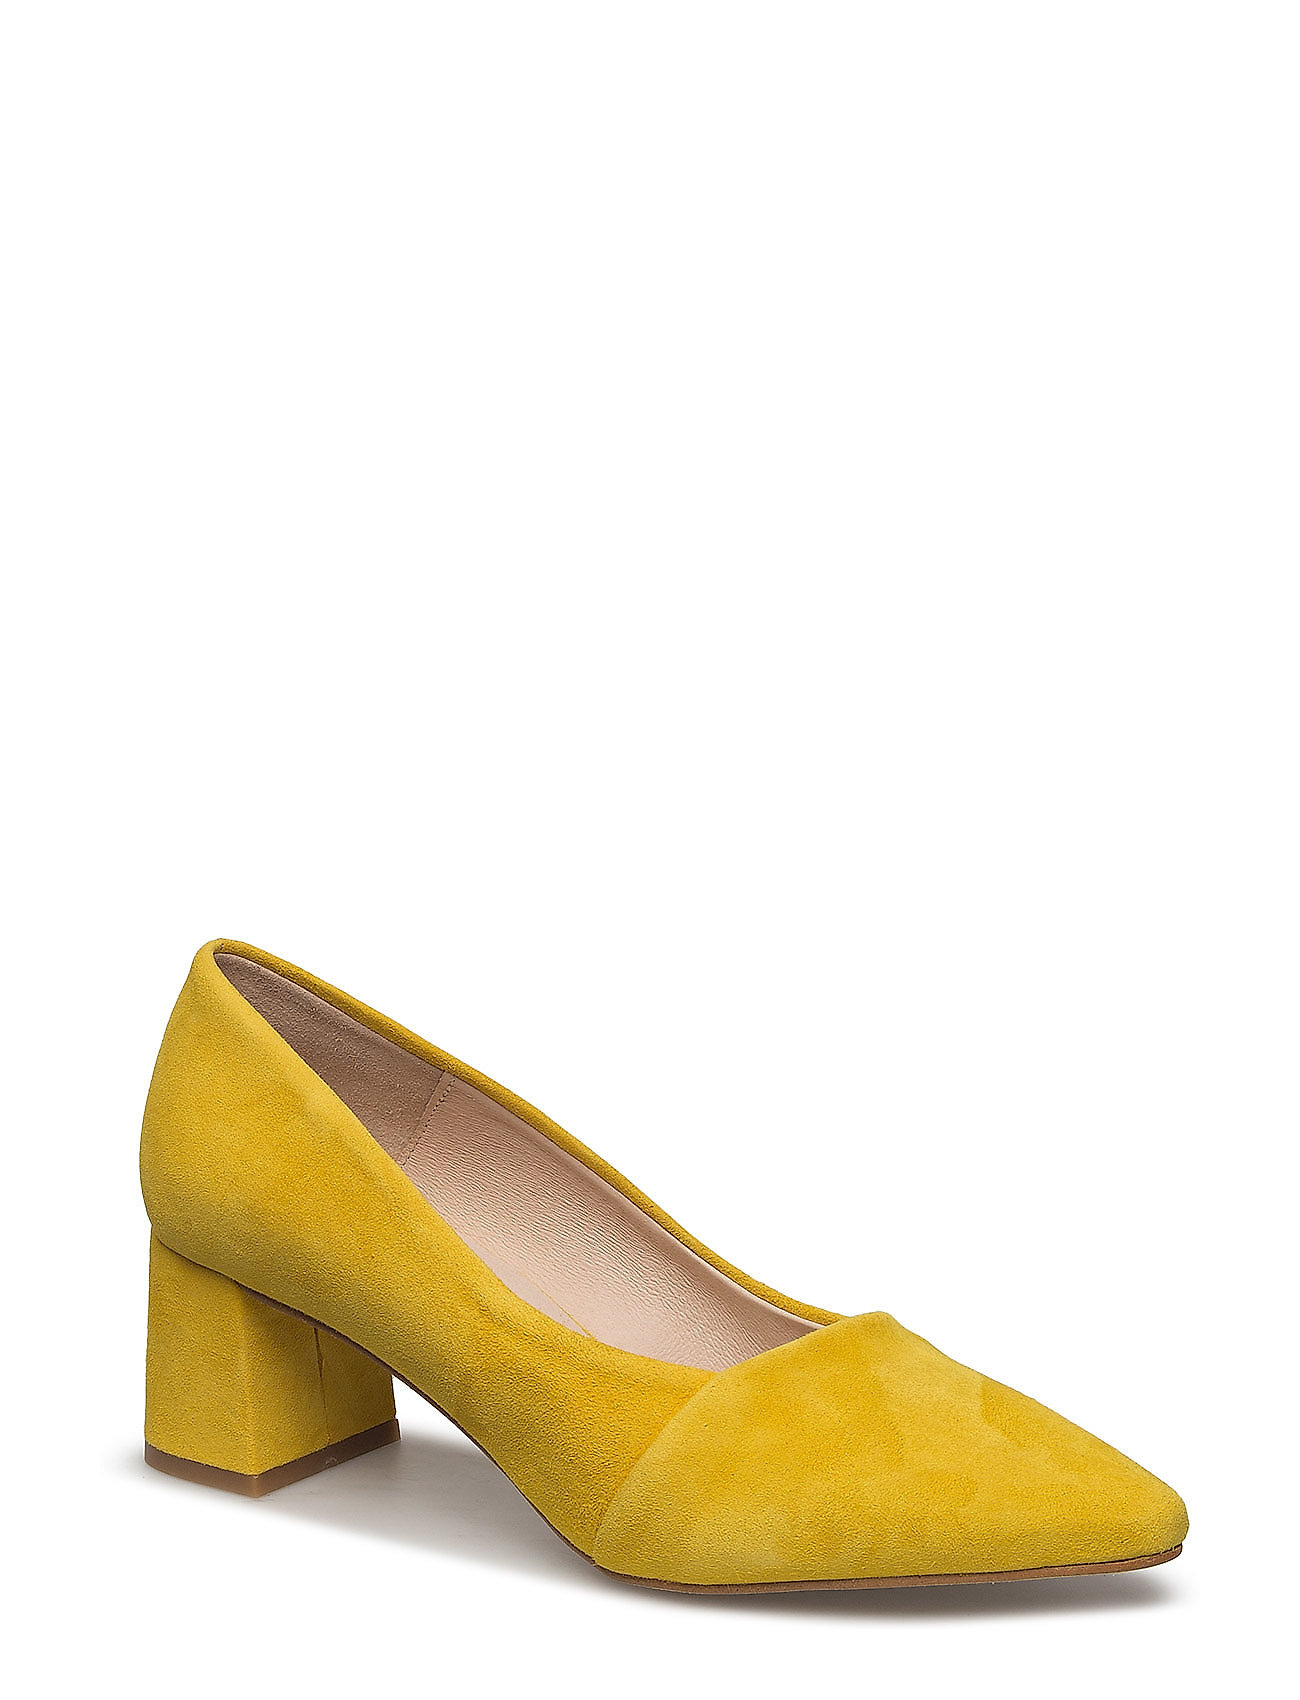 Image of Allison S Shoes Heels Pumps Classic Gul Shoe The Bear (3406684827)